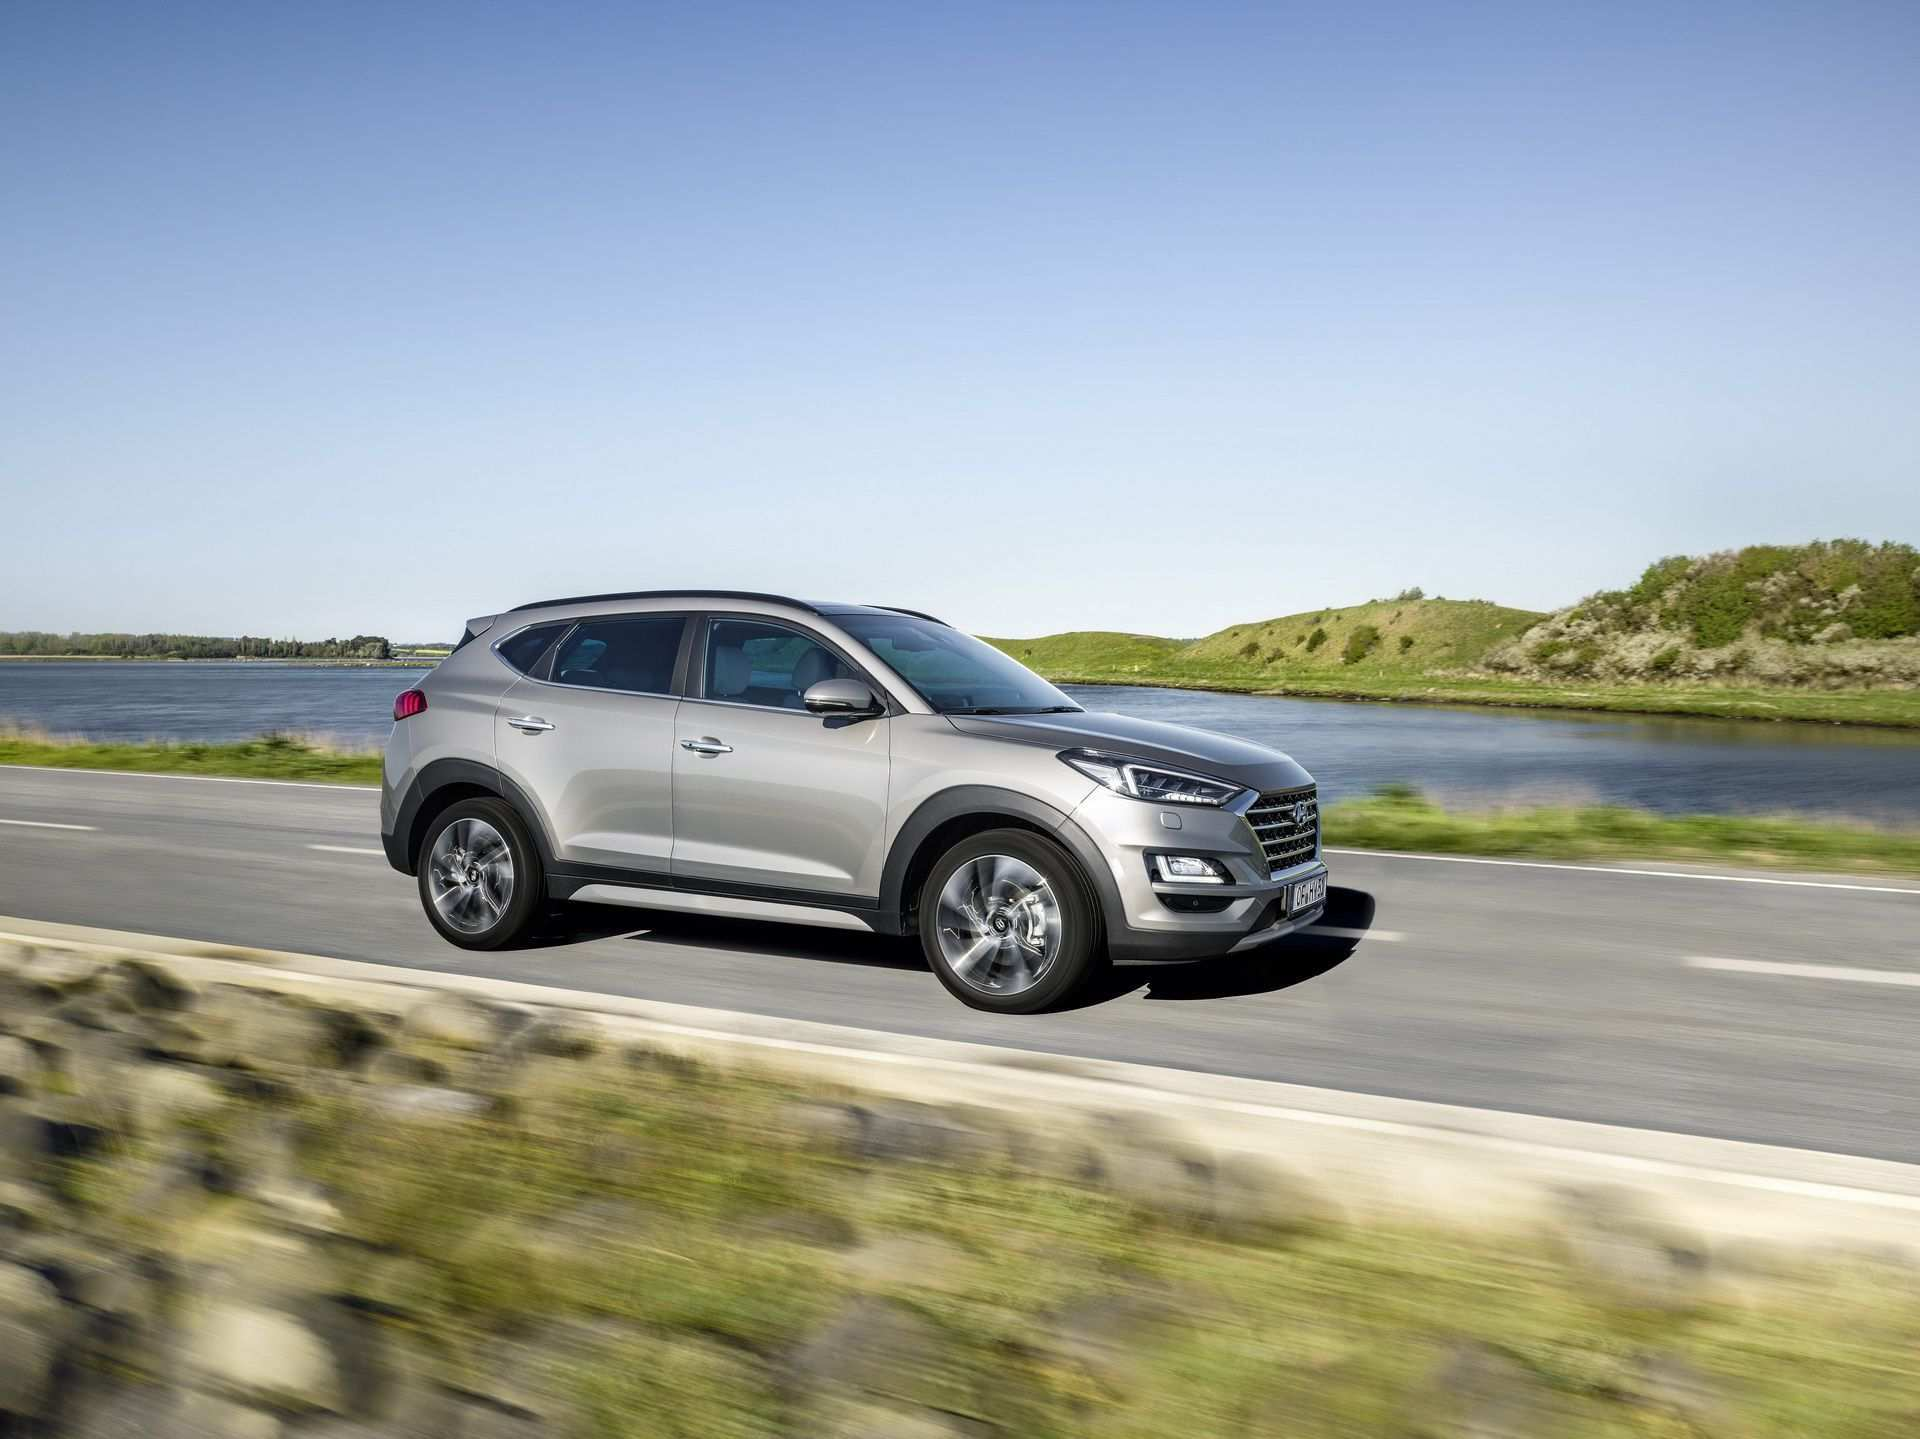 23 New Hyundai Tucson N Line 2020 Price And Review